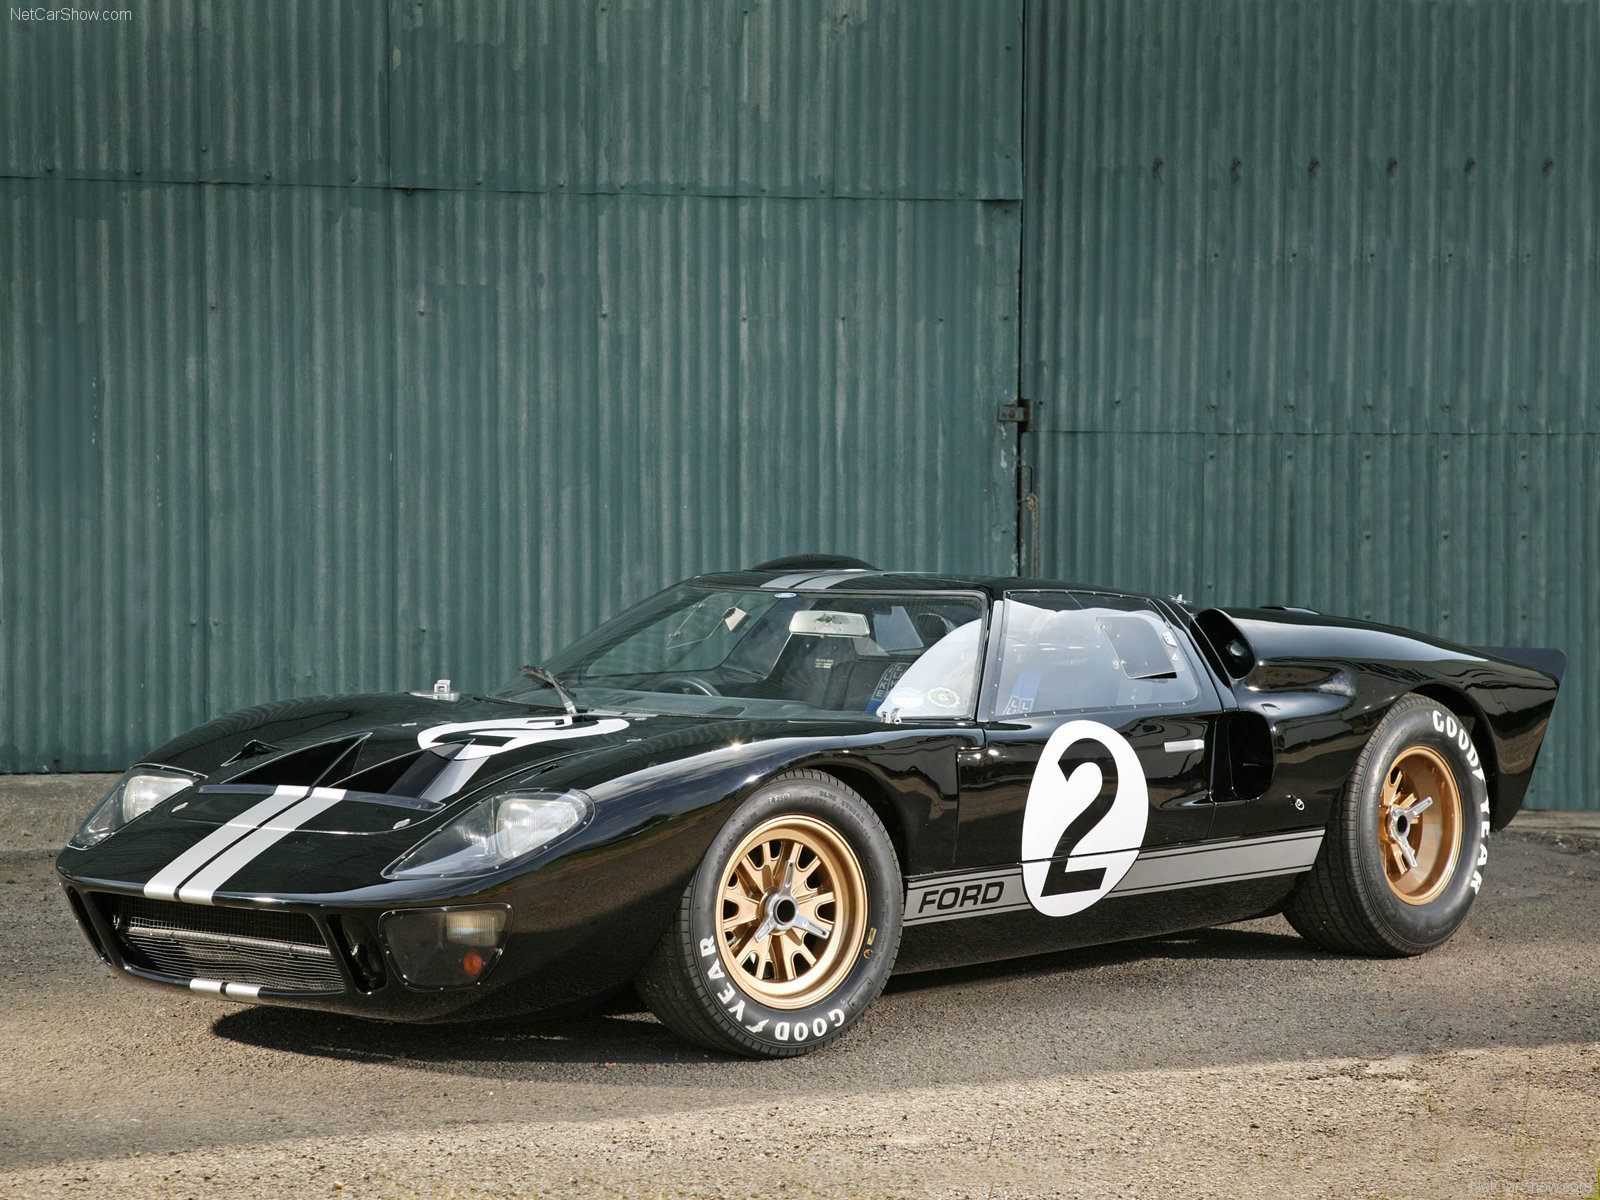 Image Result For Ford Gt Configurator